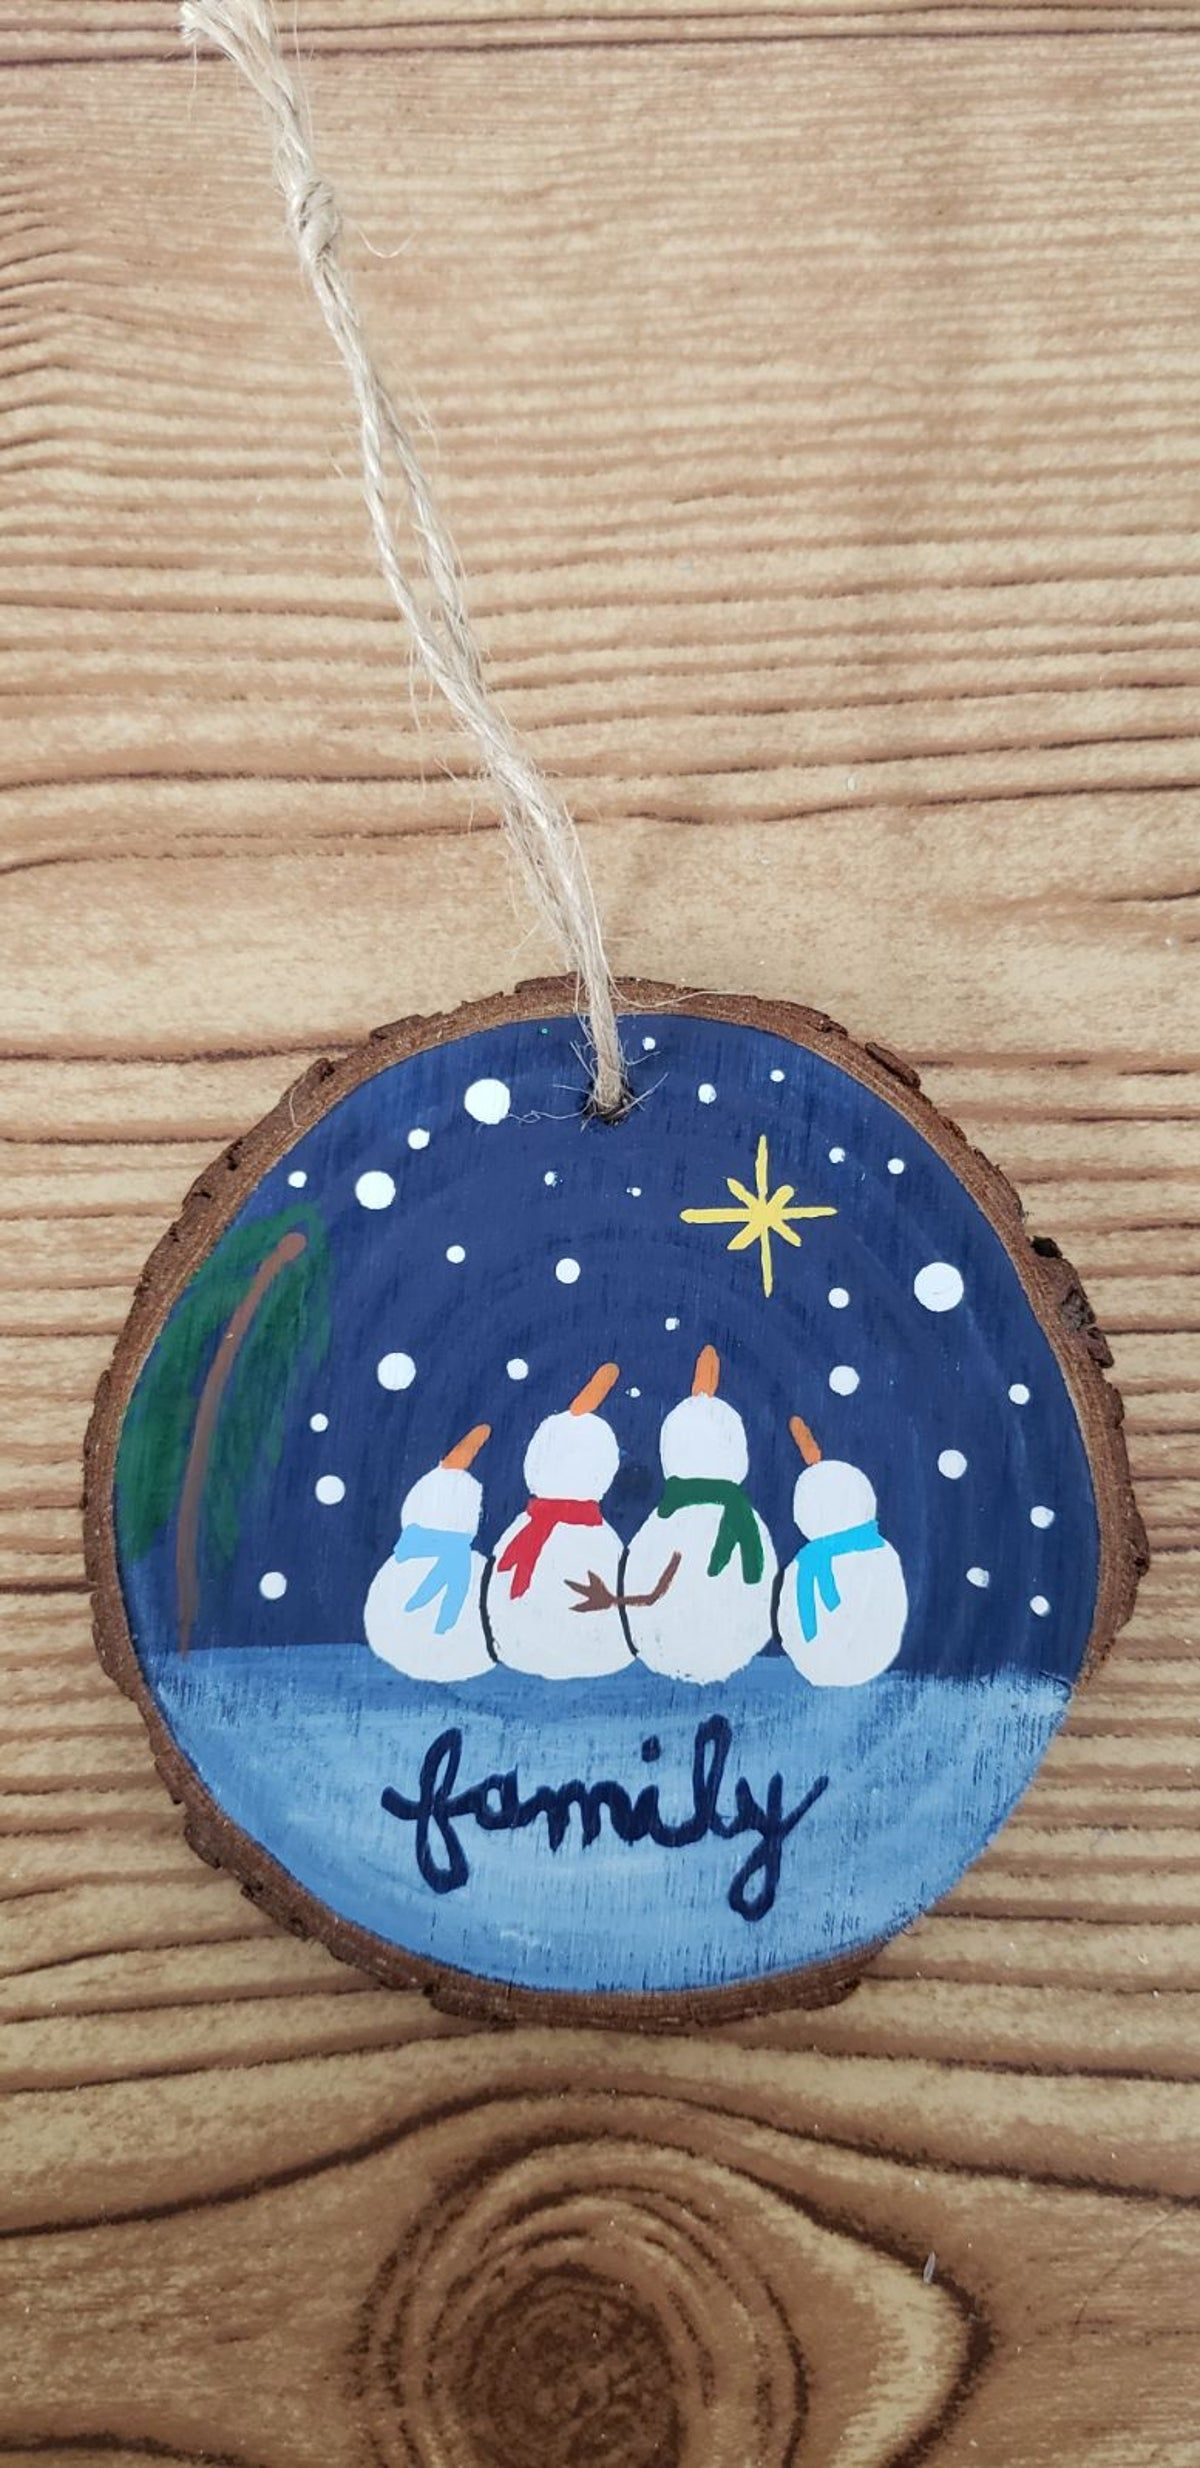 Handpainted Wood Slice Ornament Snowman On Mercari Christmas Ornament Crafts Wooden Ornaments Diy Hand Painted Ornaments